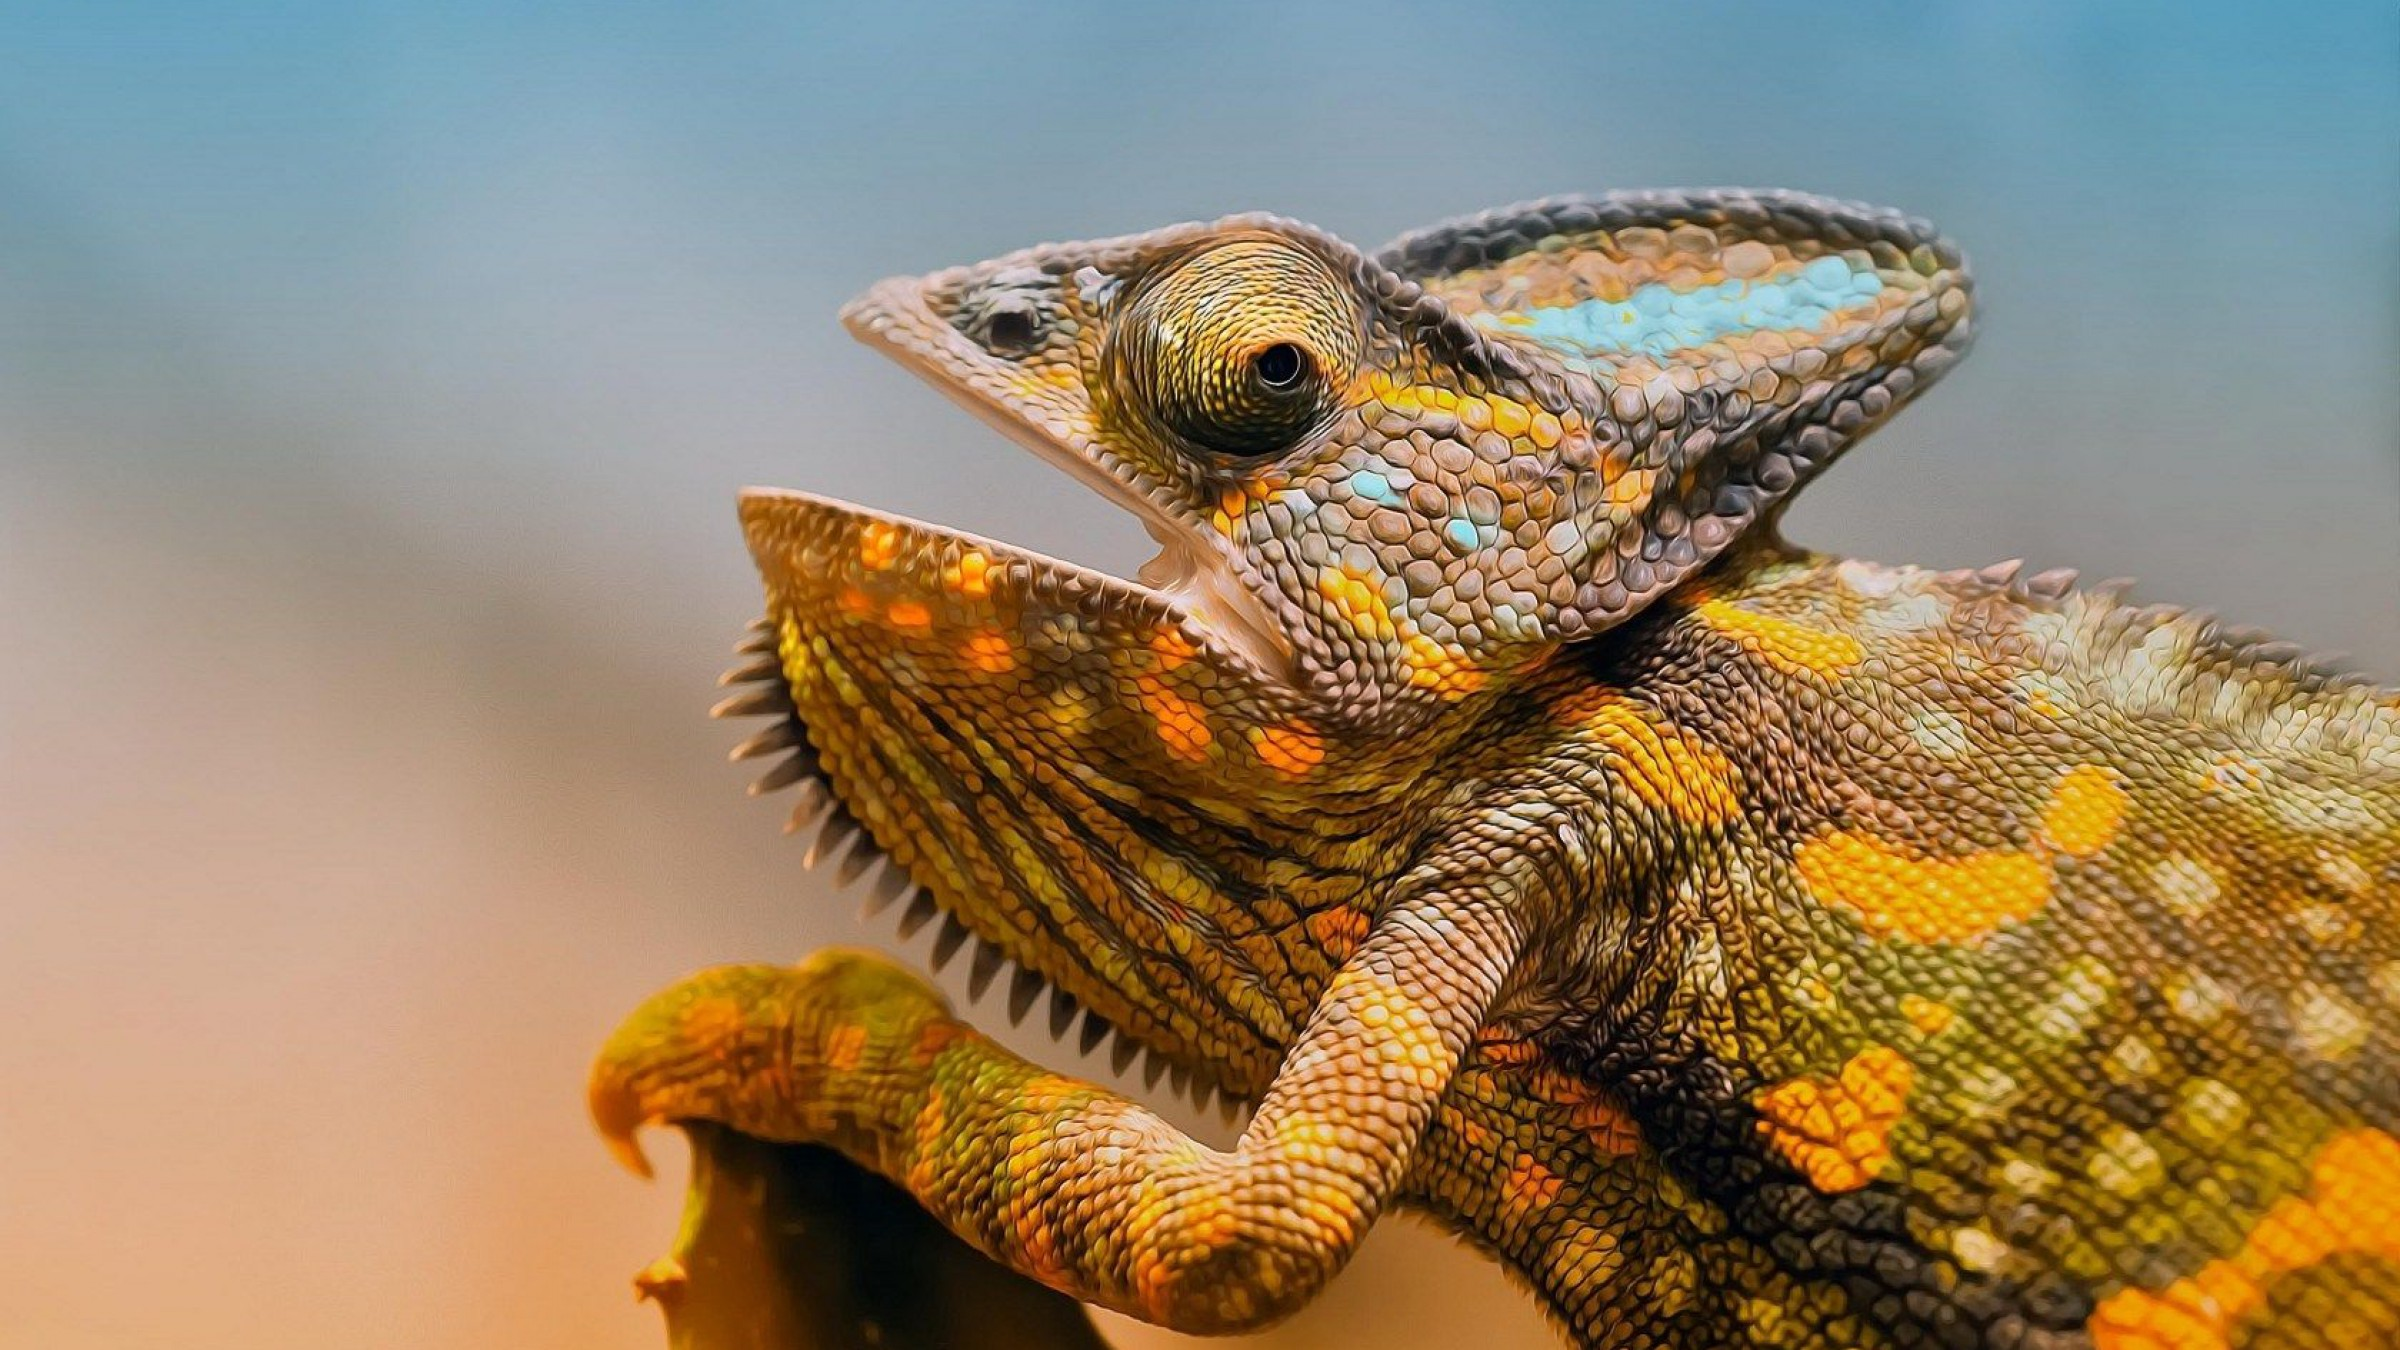 4k lizards wallpapers high quality download free